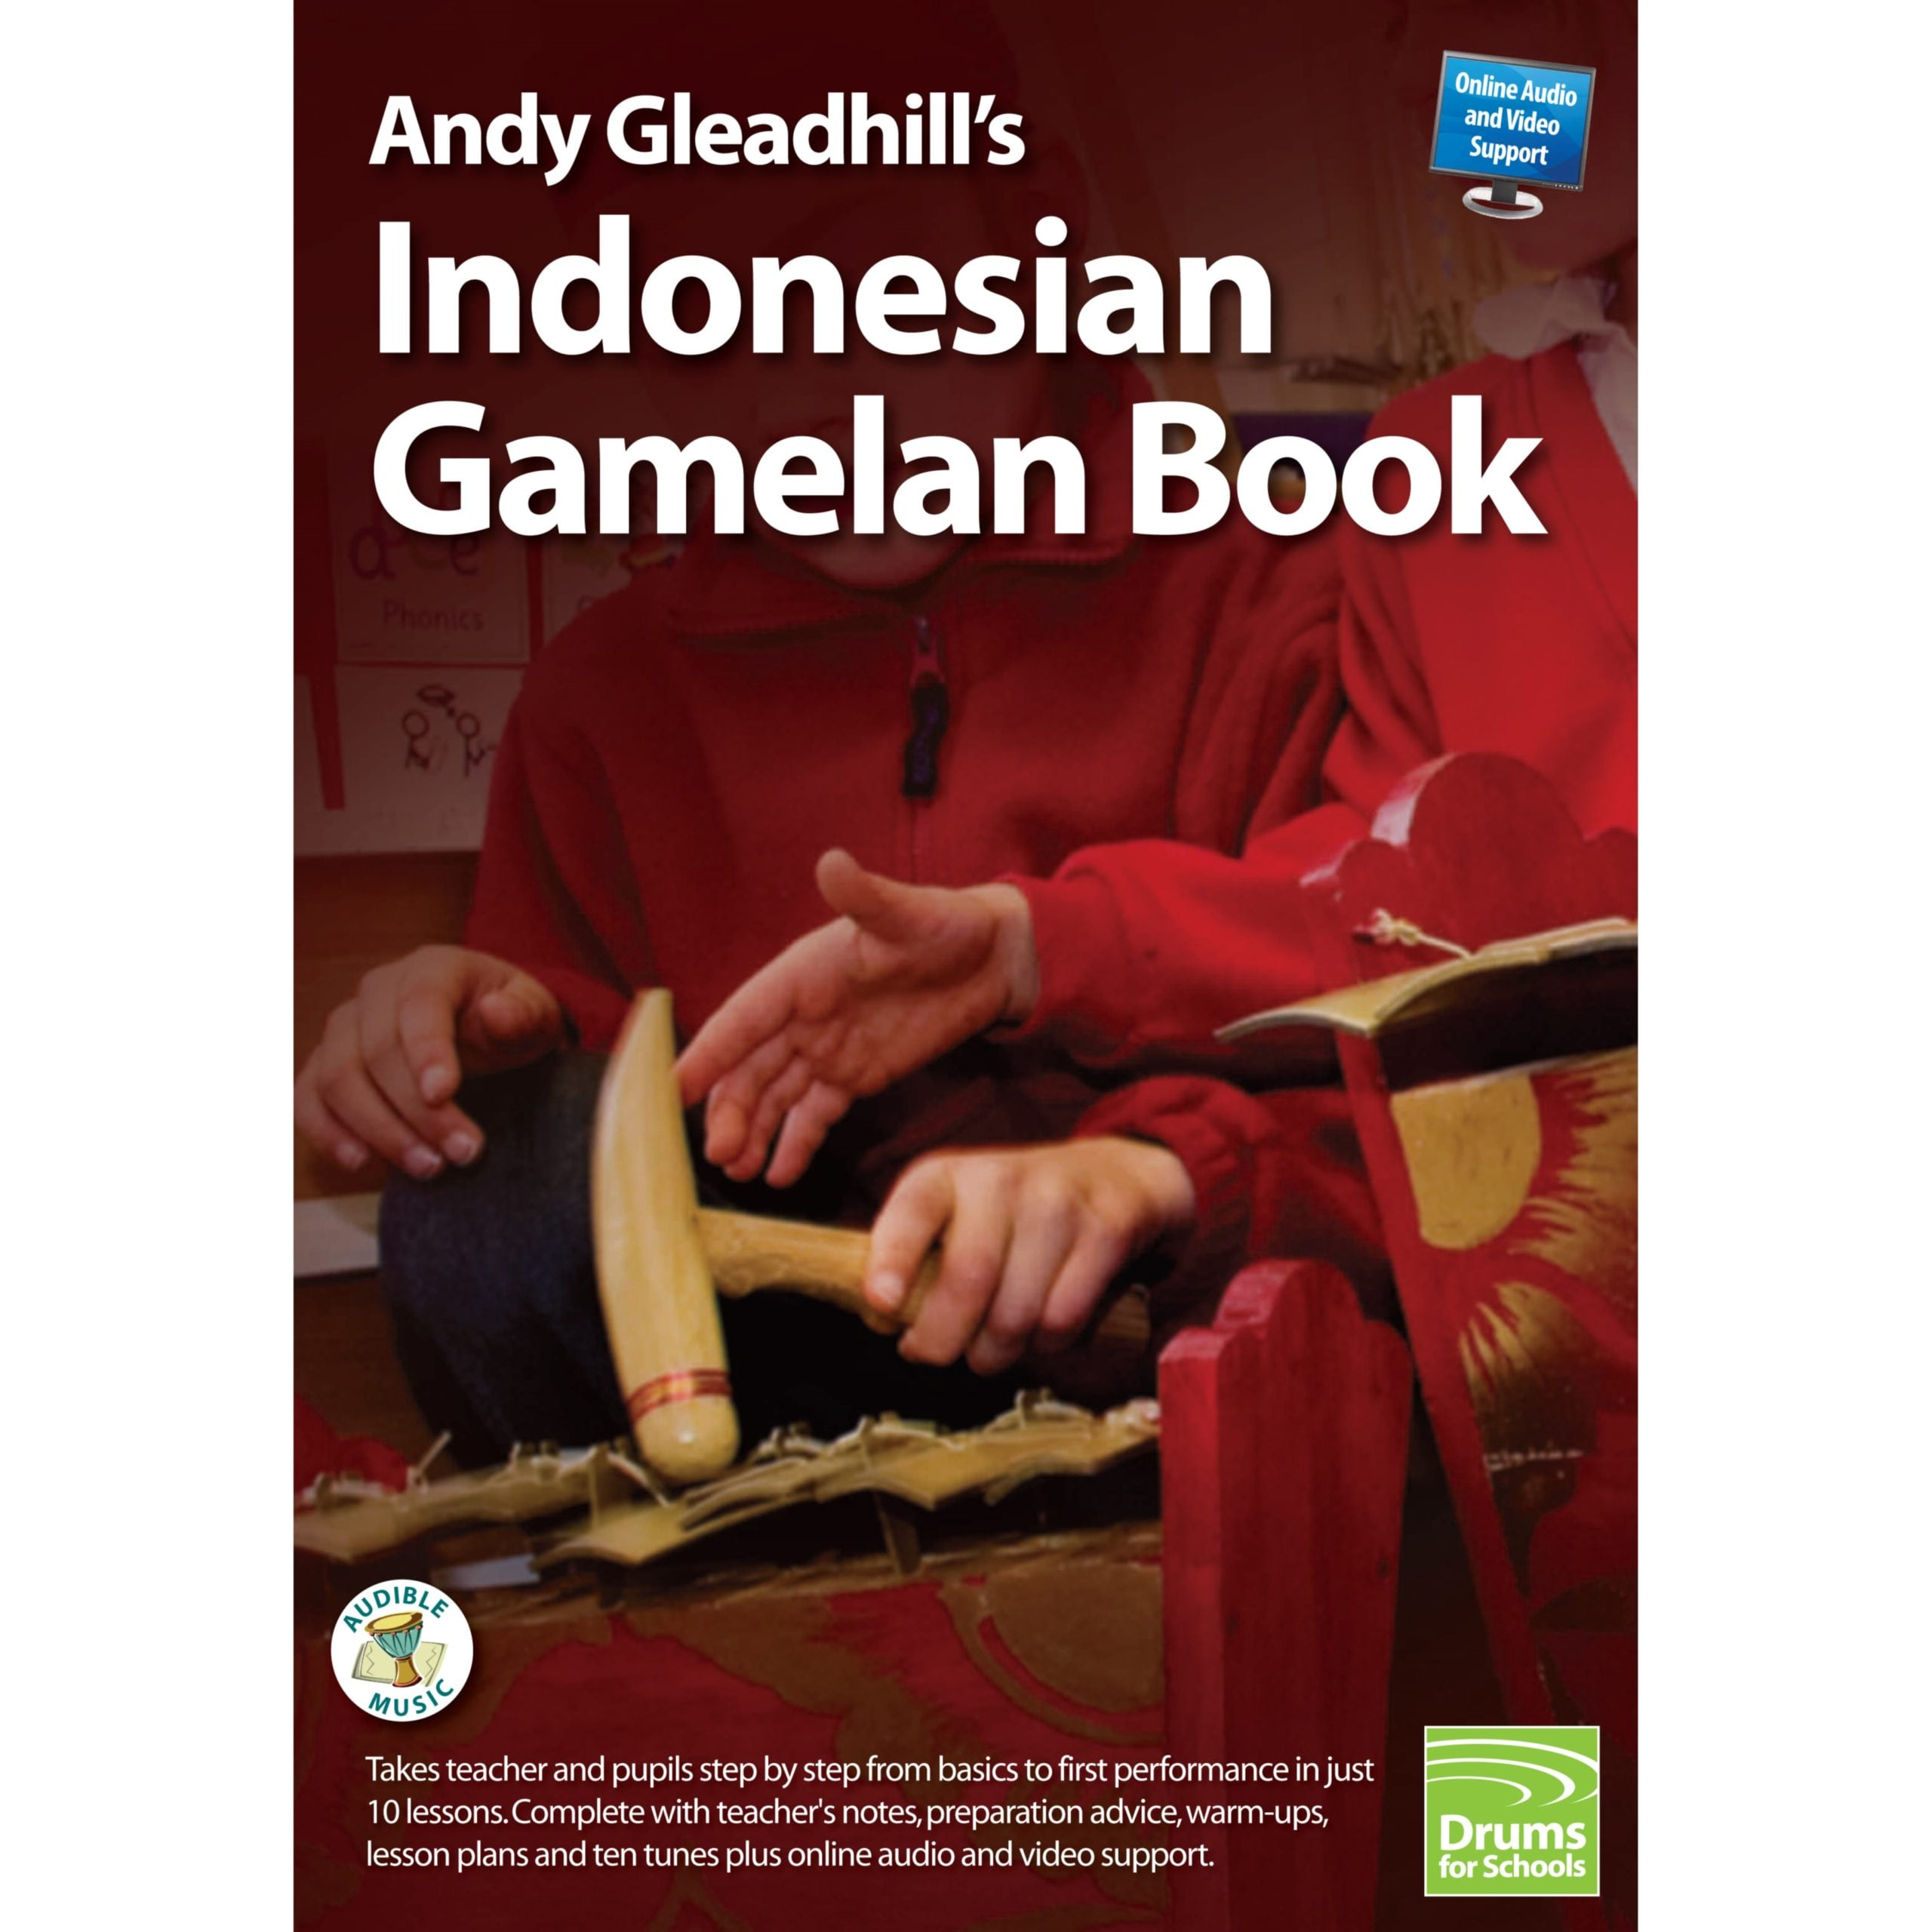 This is a product image of the front cover of Andy Gleadhill's Indonesian Gamelan Book.